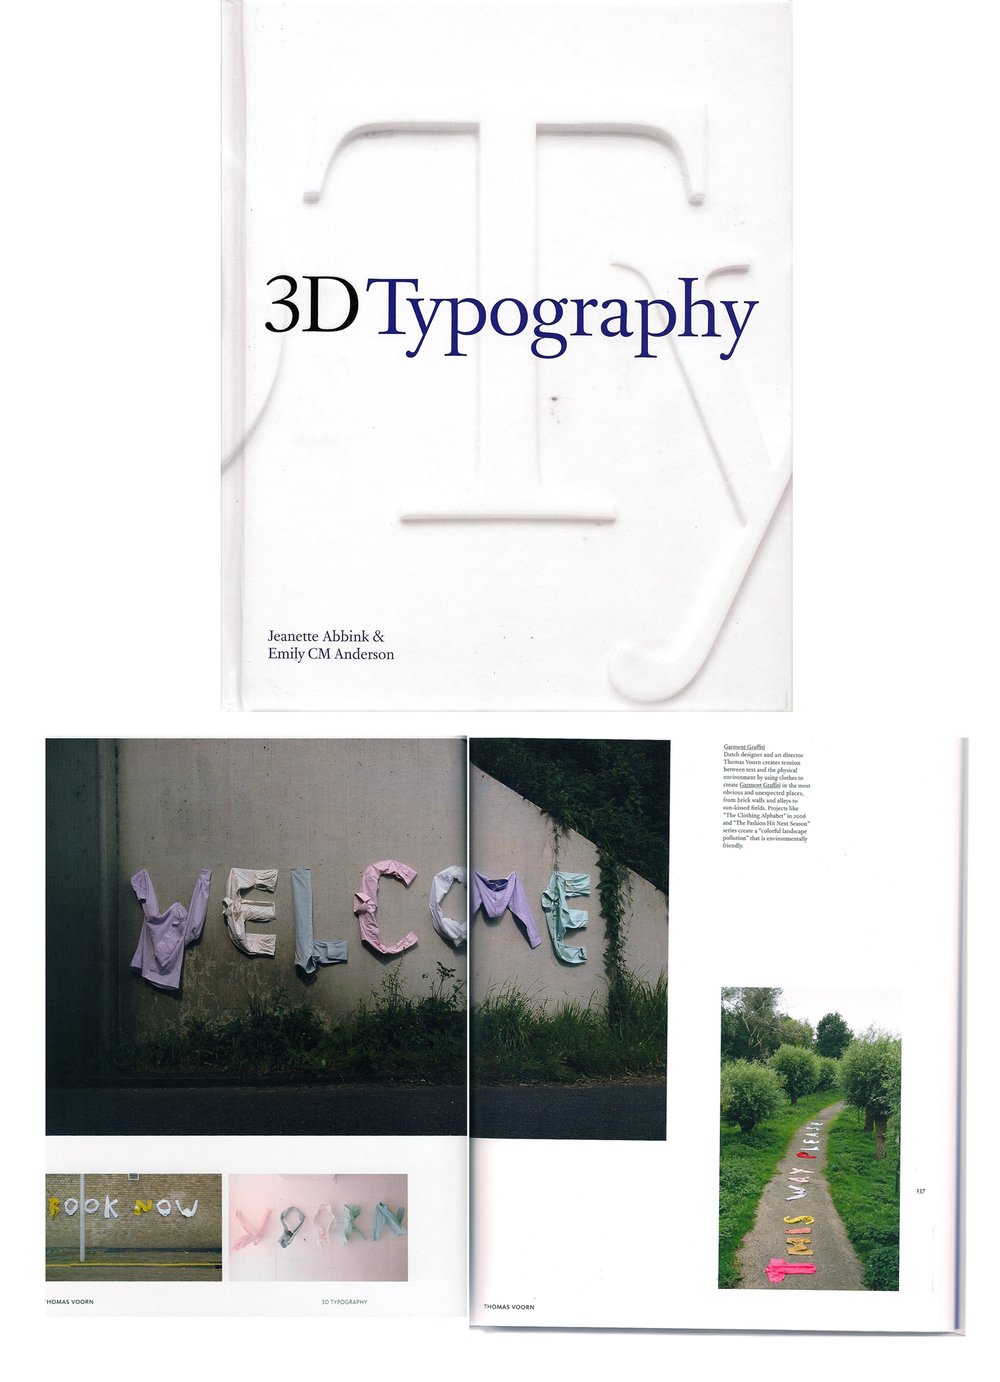 Press-3D-Typography-book-on-Thomas-Voorn-osmb.jpg